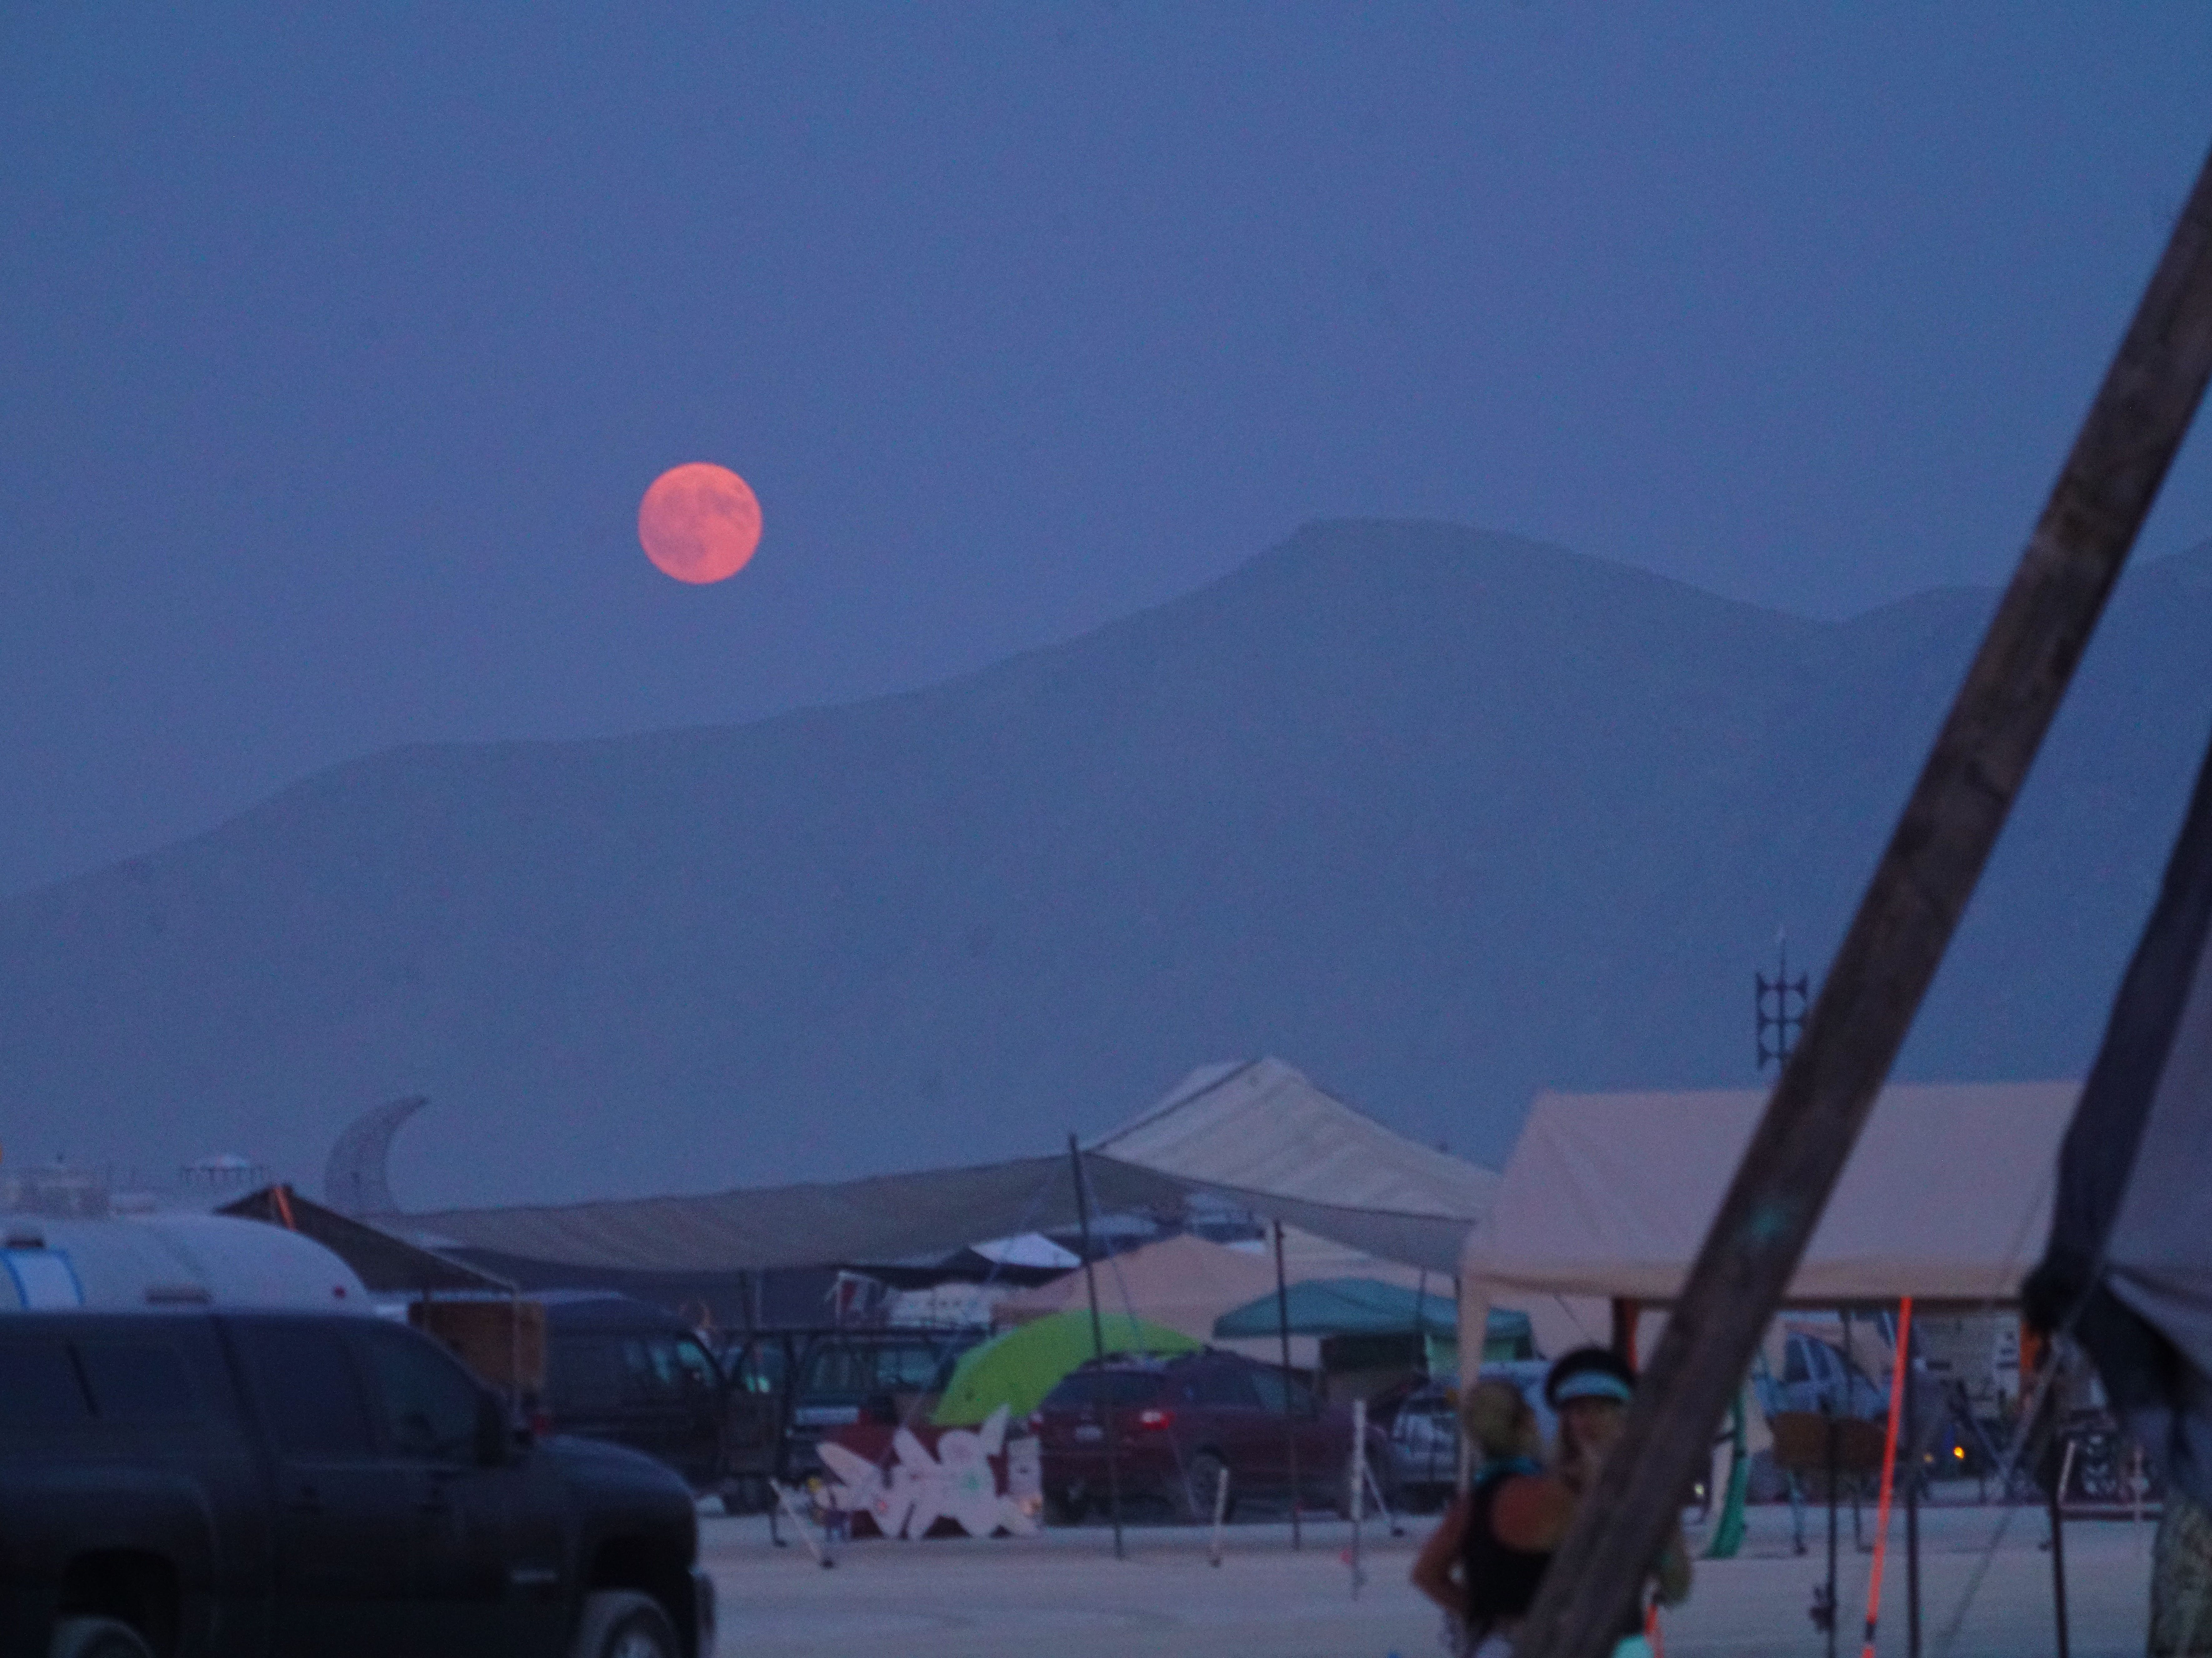 The full moon rises over the Burning Man festival site in Northern Nevada.